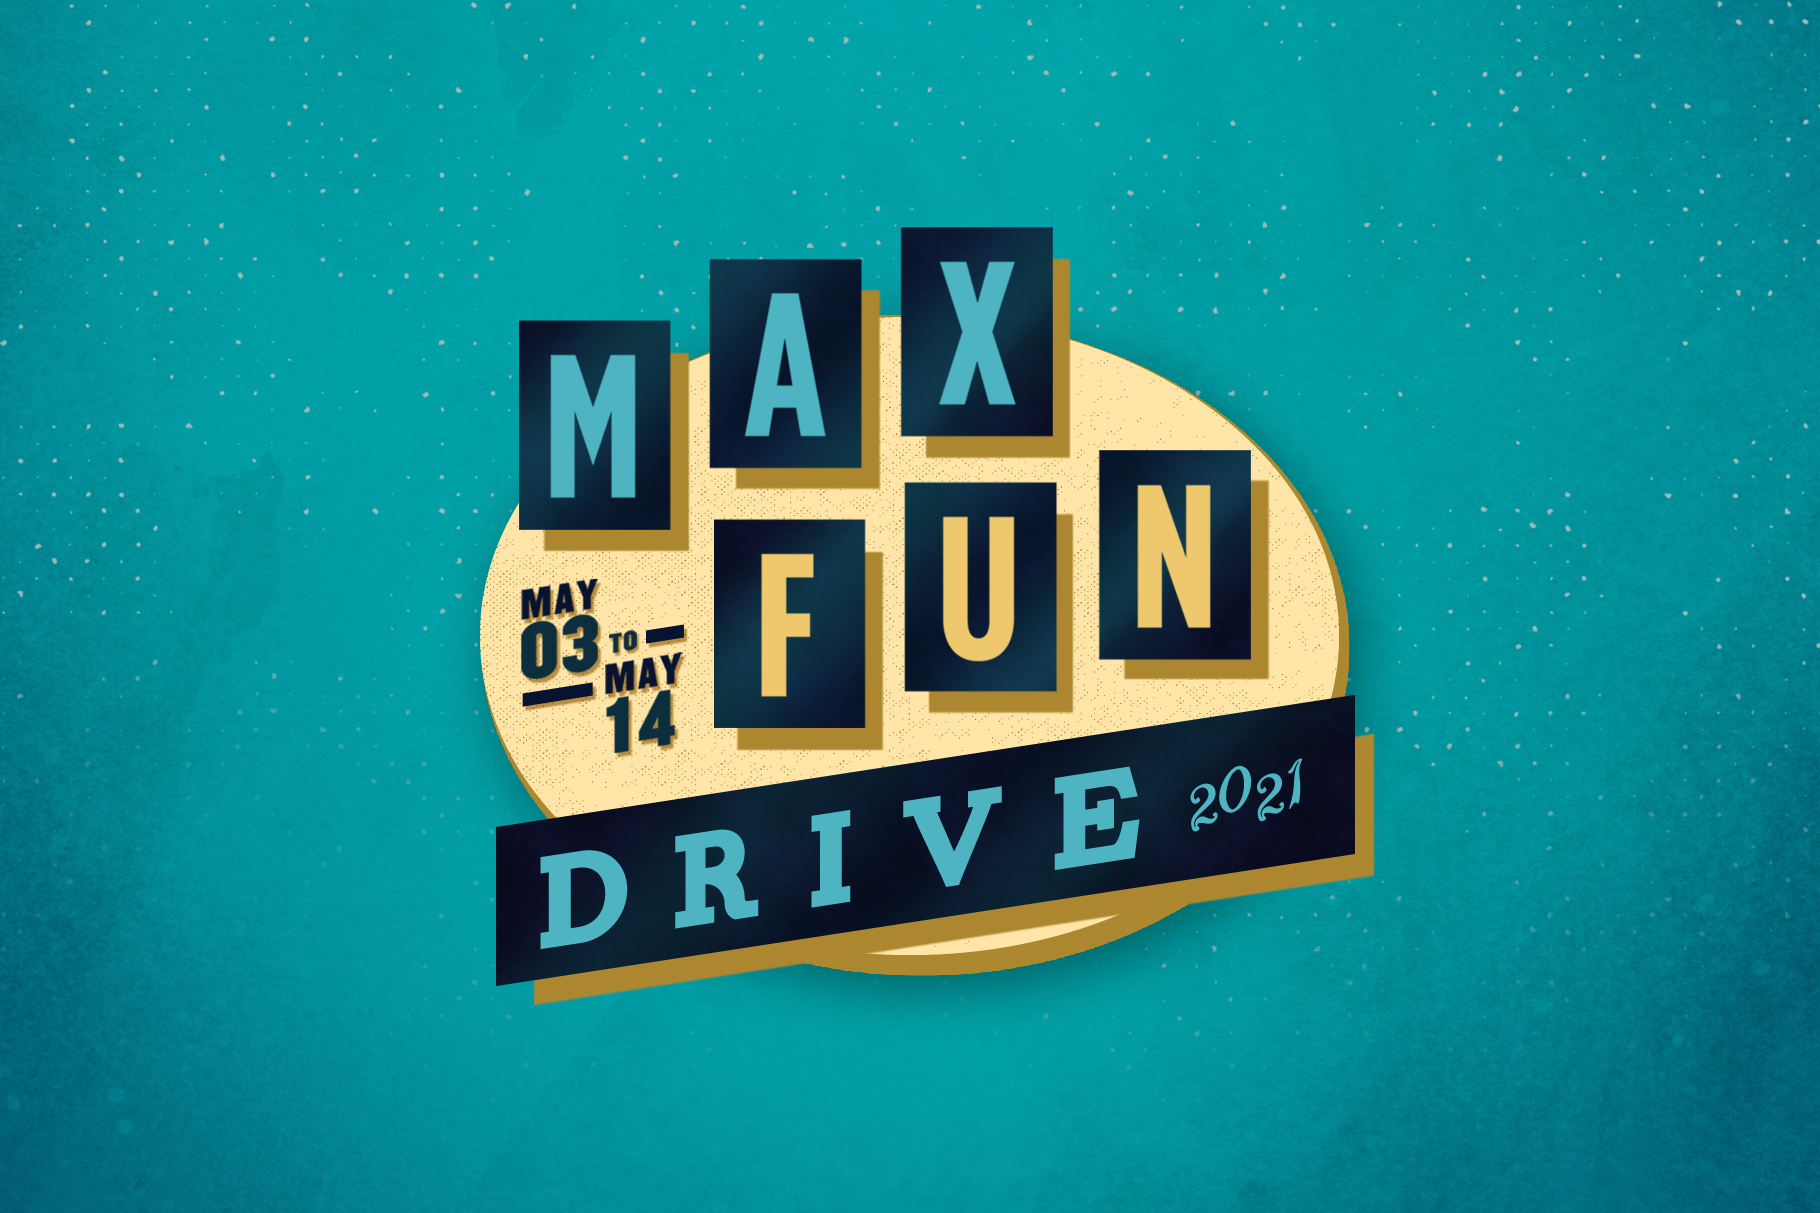 """The text """"MAX FUN DRIVE 20201"""" is written on a sign resembling an old drive-in sign. To the left is the additional text """"May 03 to May 14""""."""